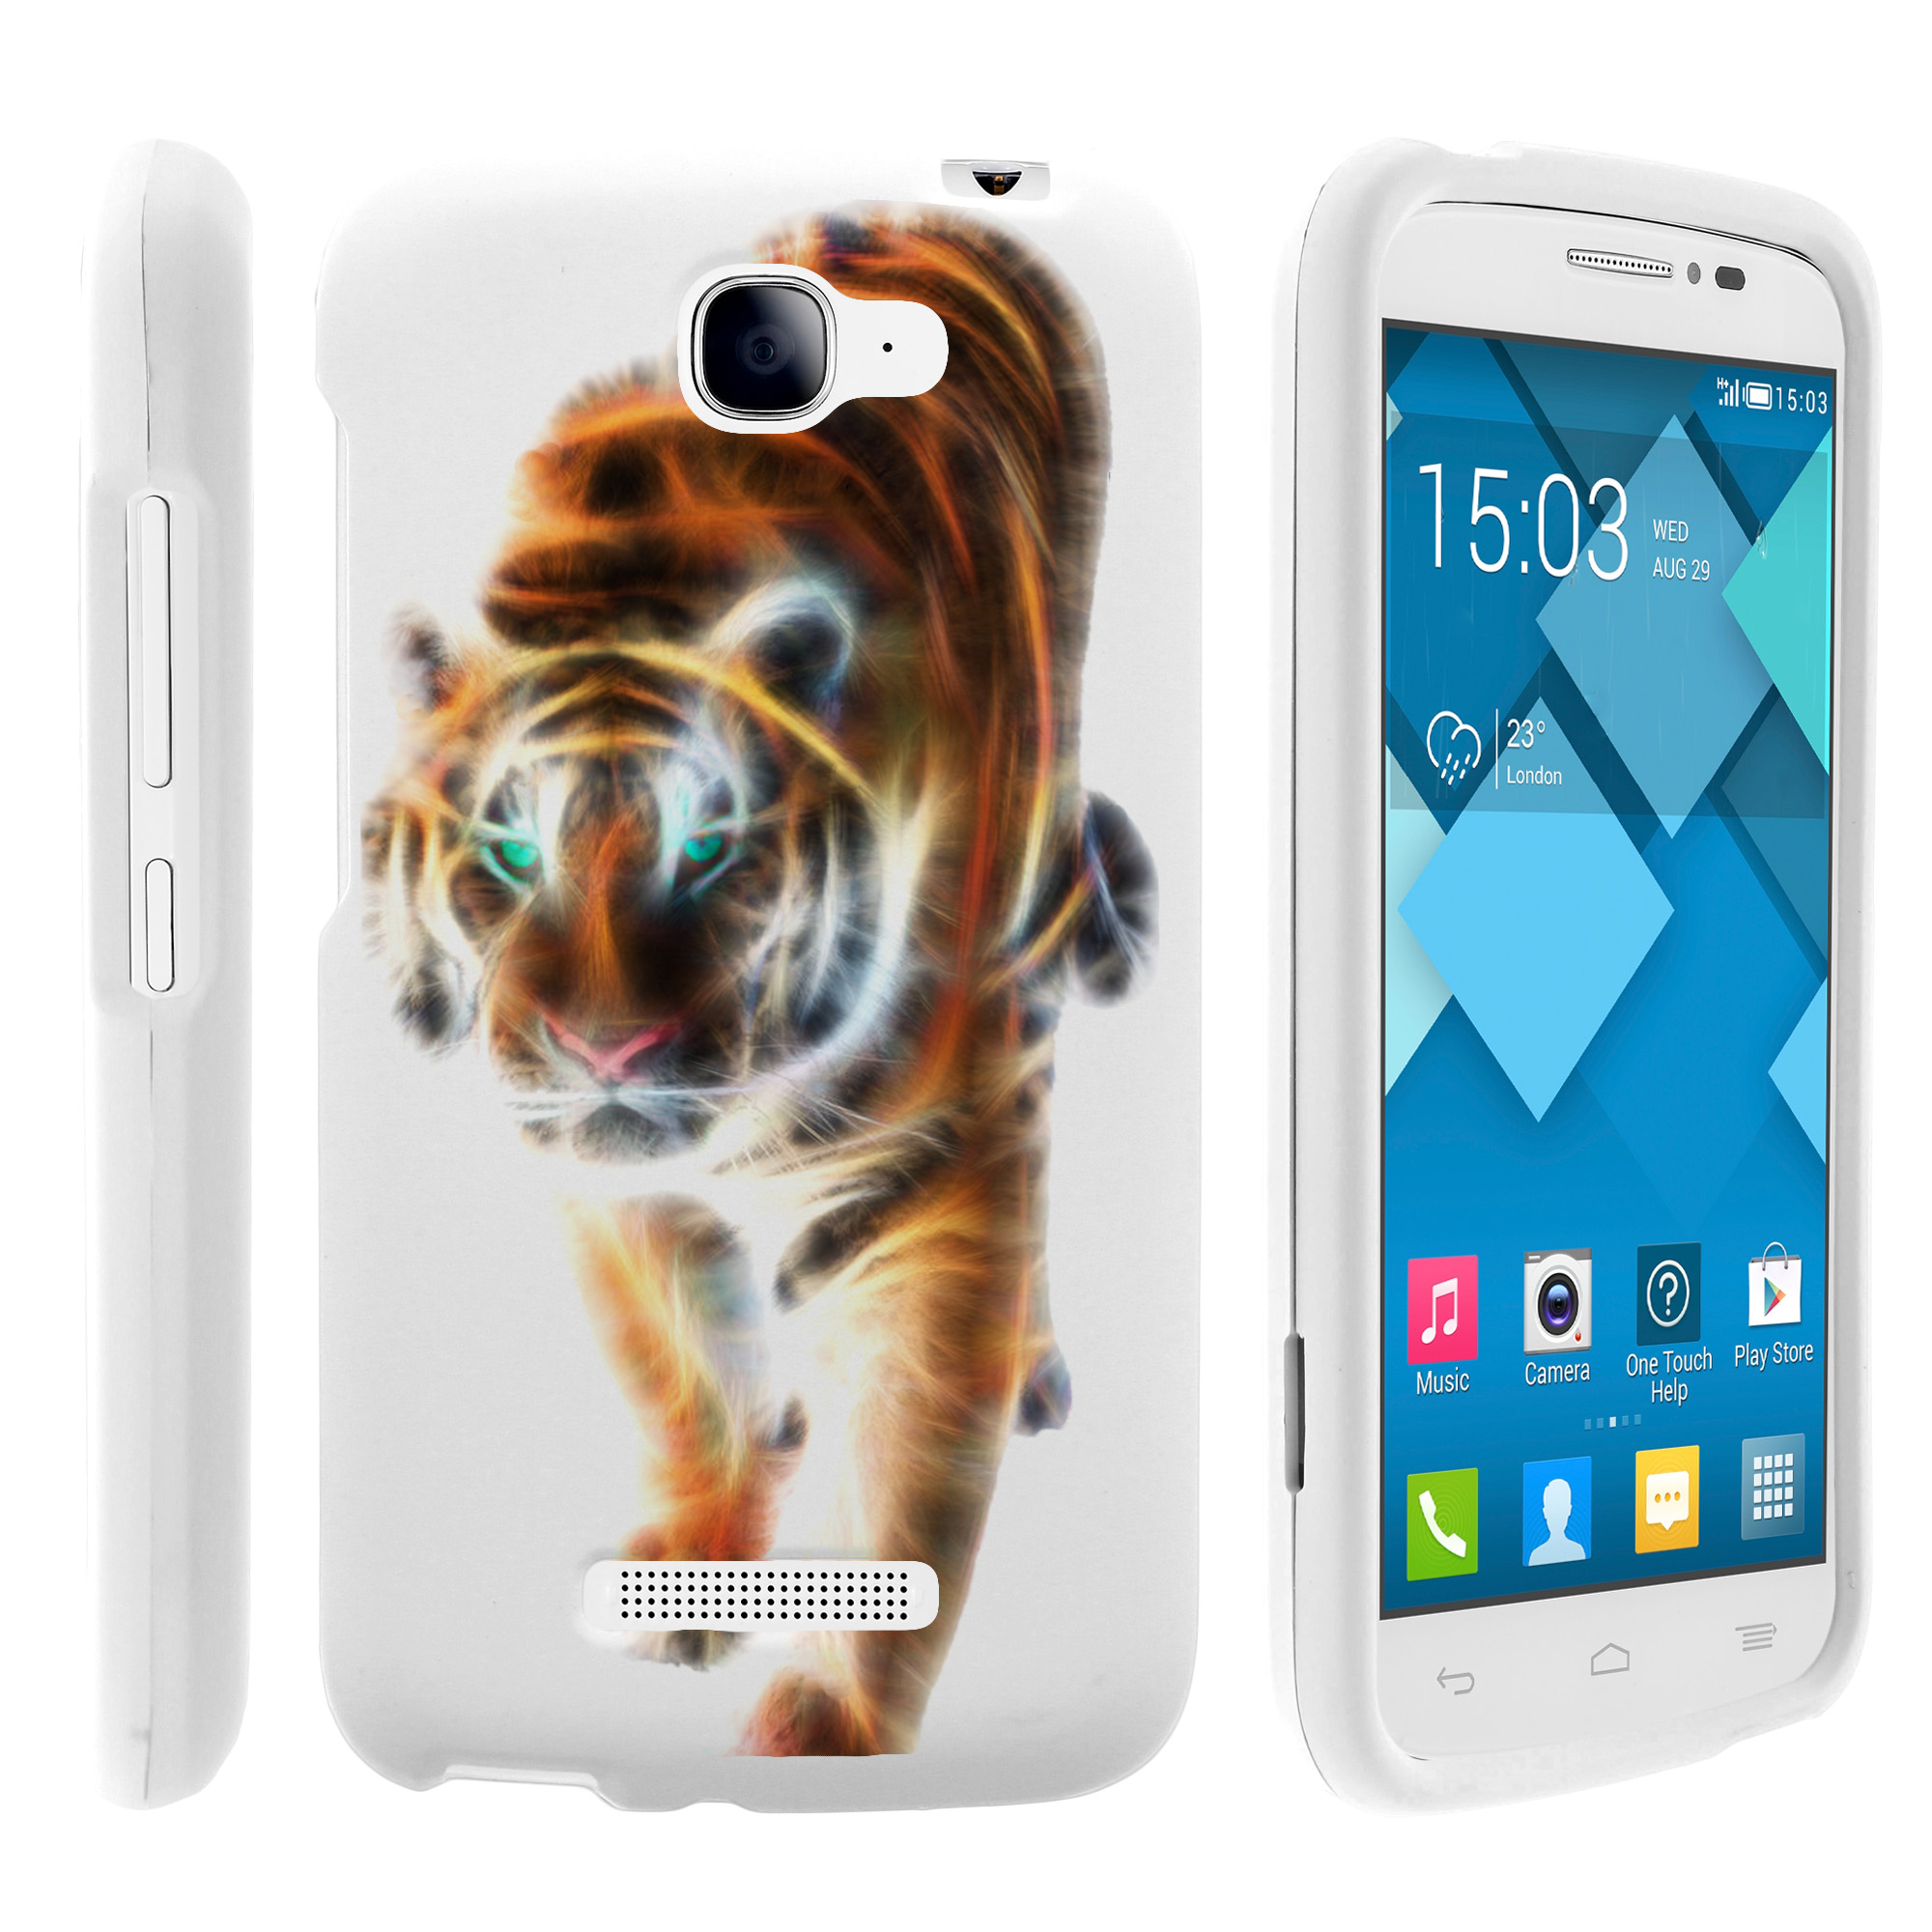 Alcatel Fierce 2, Pop Icon, 7040T, and A564C, [SNAP SHELL][White] 2 Piece Snap On Rubberized Hard White Plastic Cell Phone Case with Exclusive Art -  Blazing Tiger